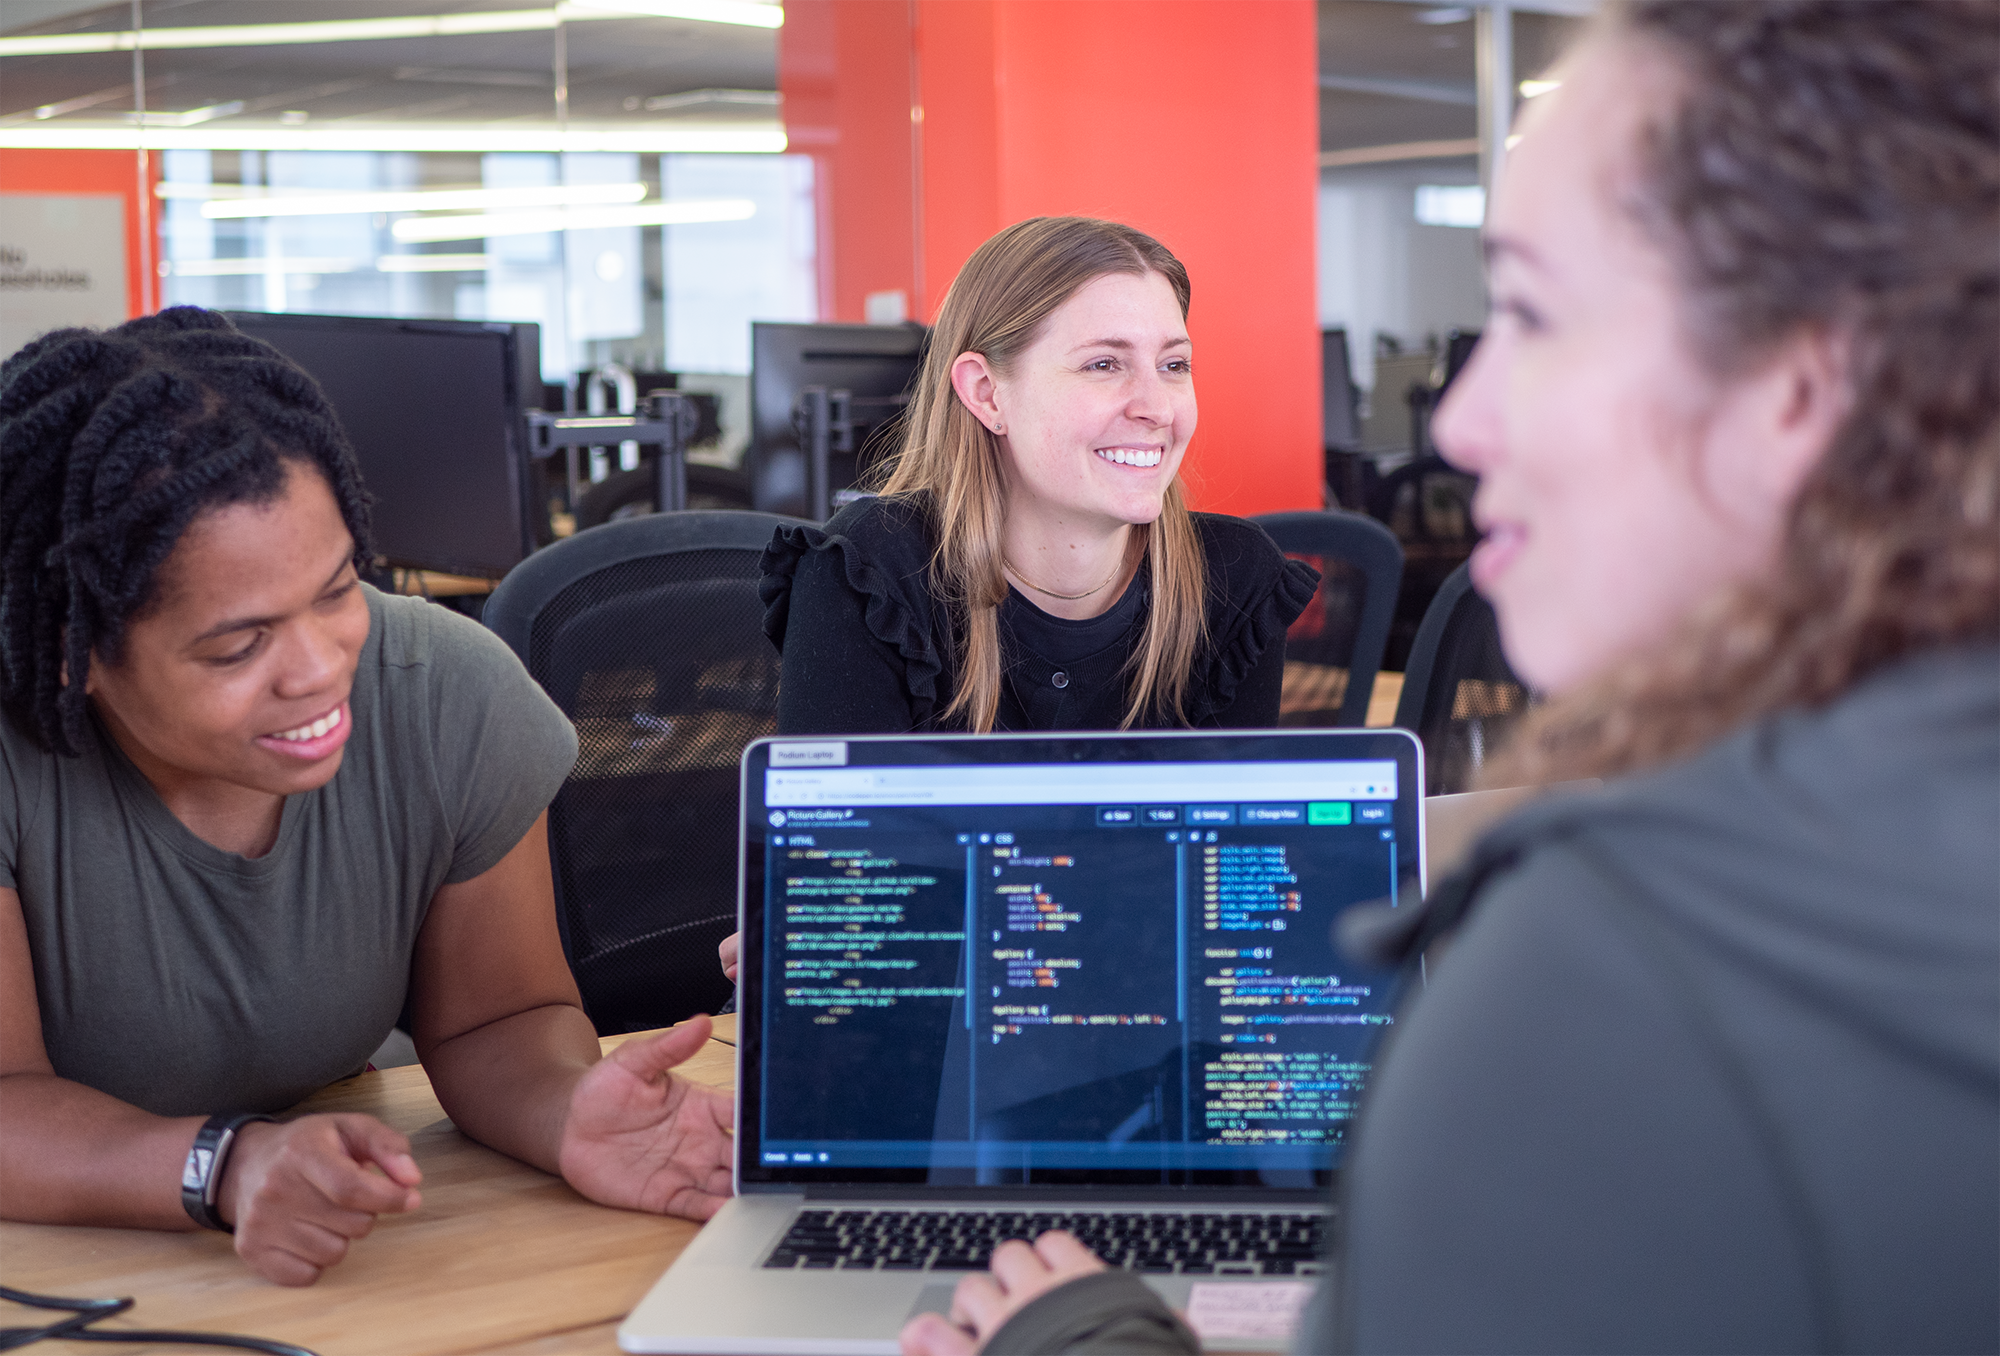 women-identifying students learning how to code